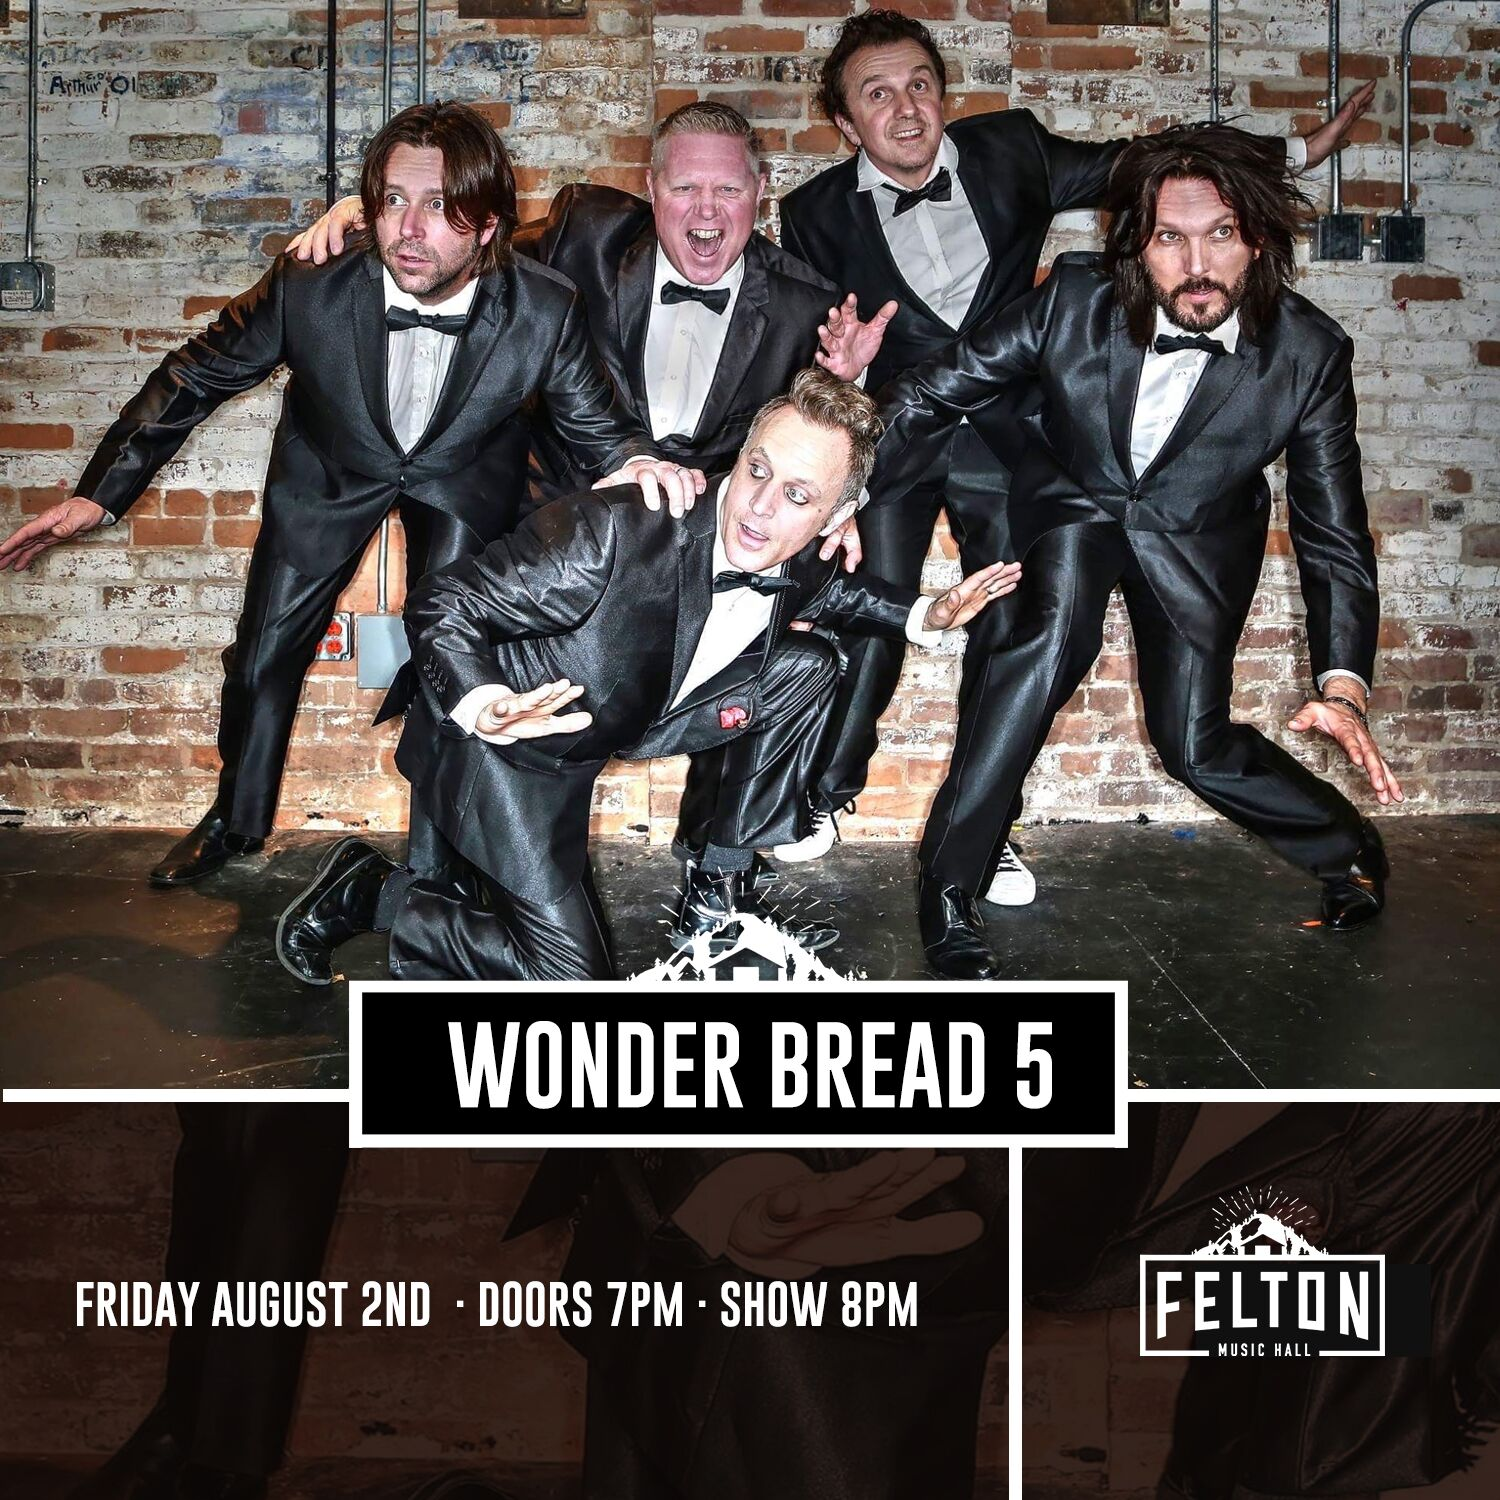 Wonder Bread 5 Felton Music Hall.jpg